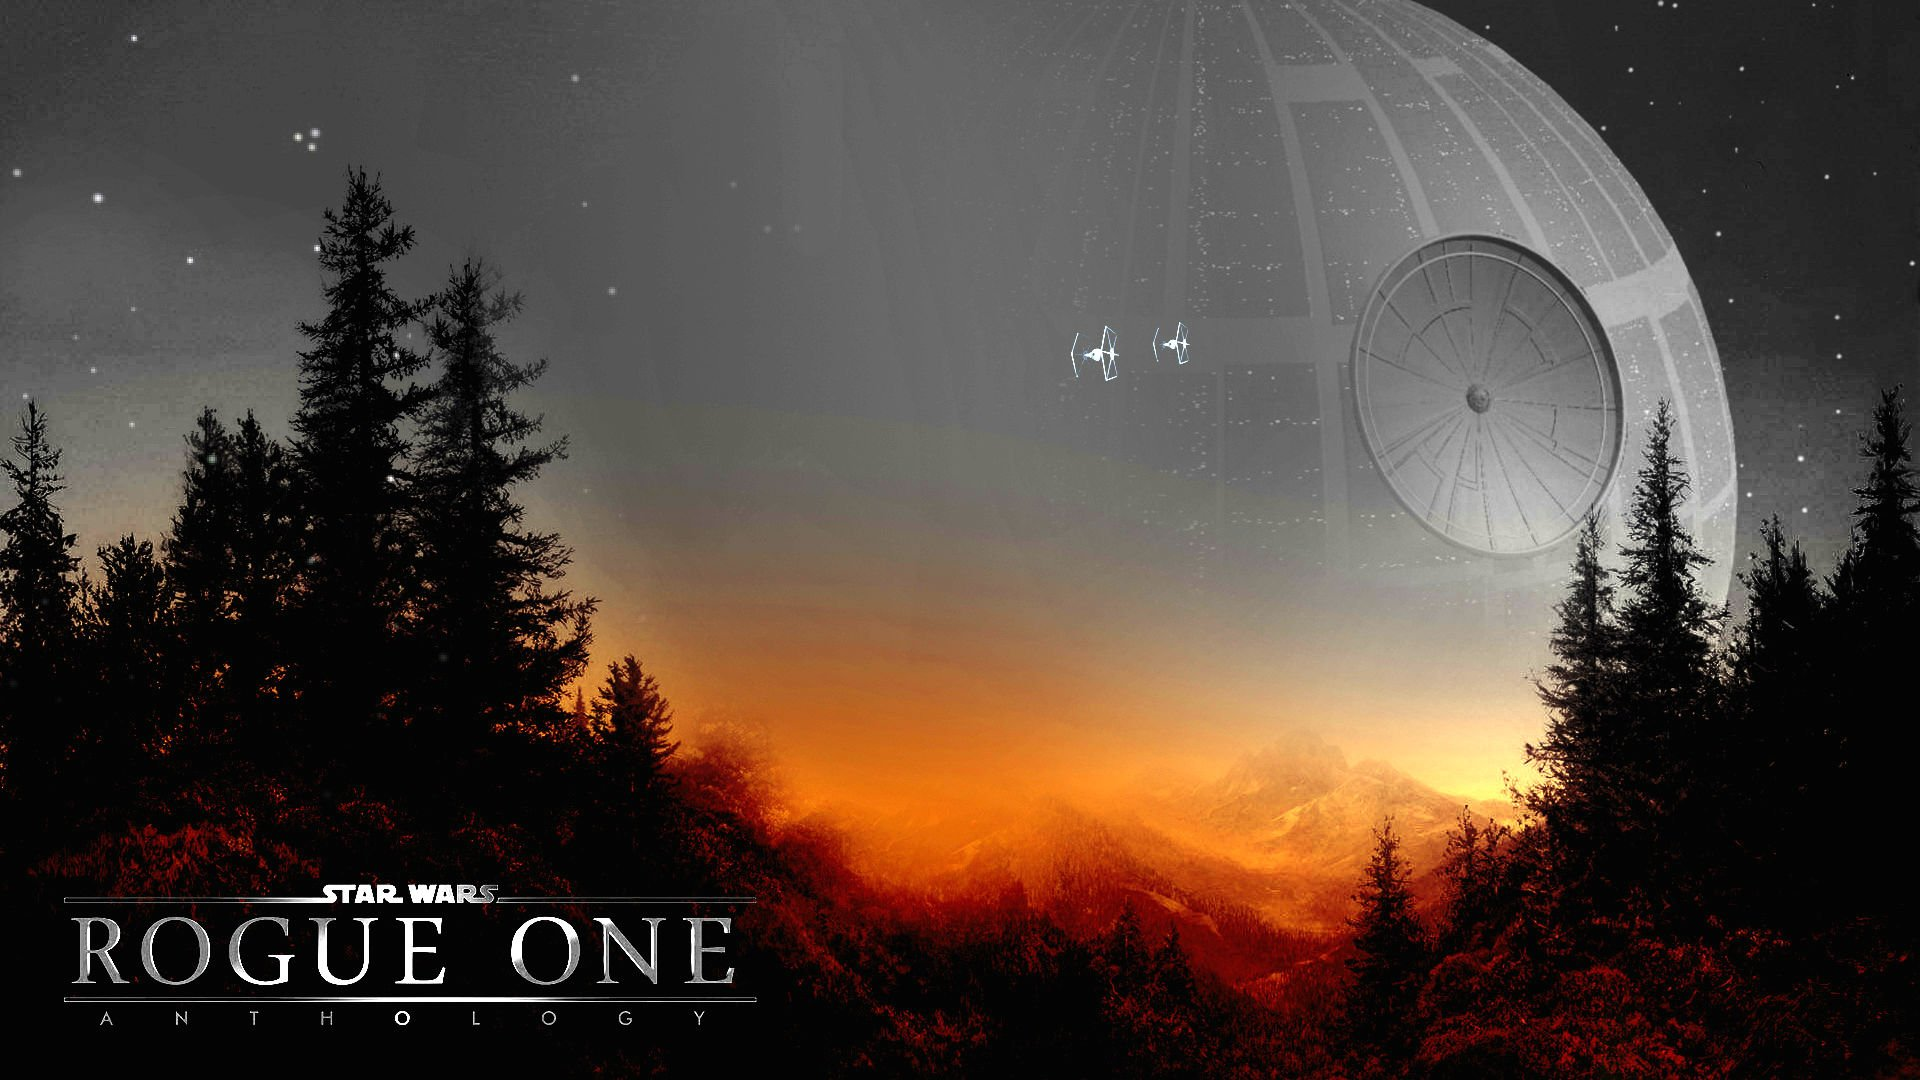 Star Wars Rogue One Anthology Hd Movies 4k Wallpapers Images Backgrounds Photos And Pictures